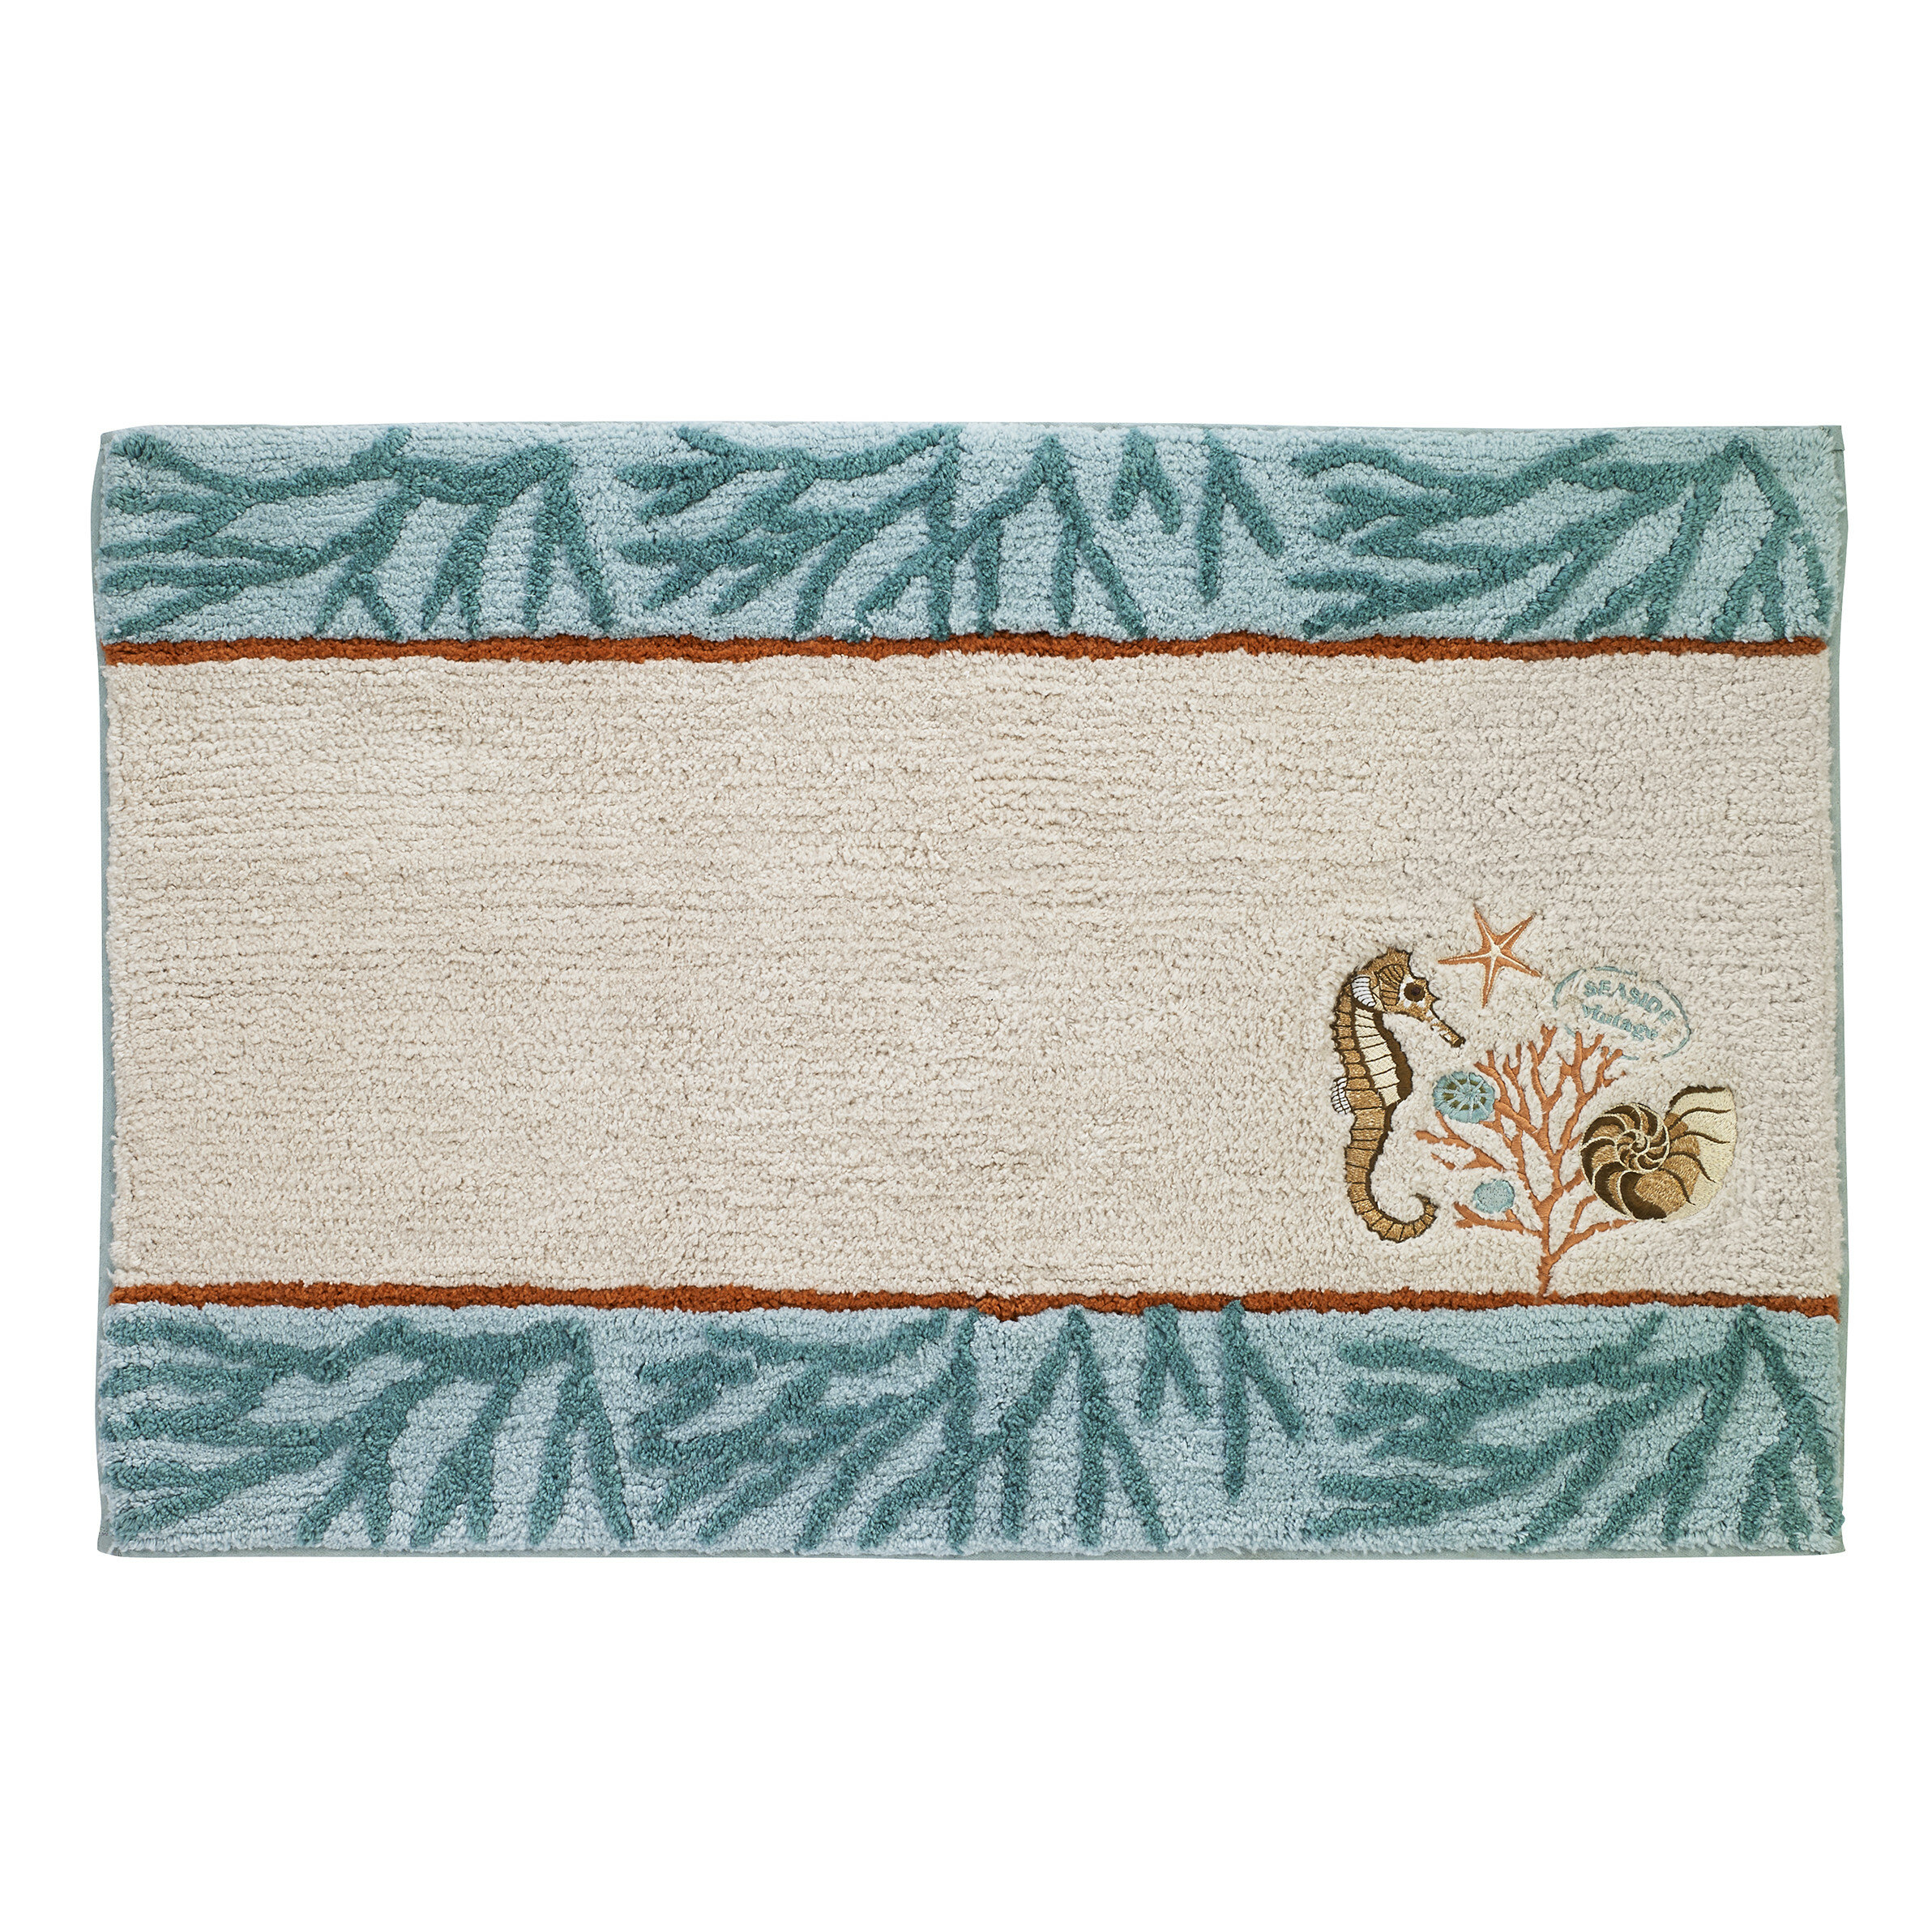 linen bath mat towel towels set mats piece dry quick amaze